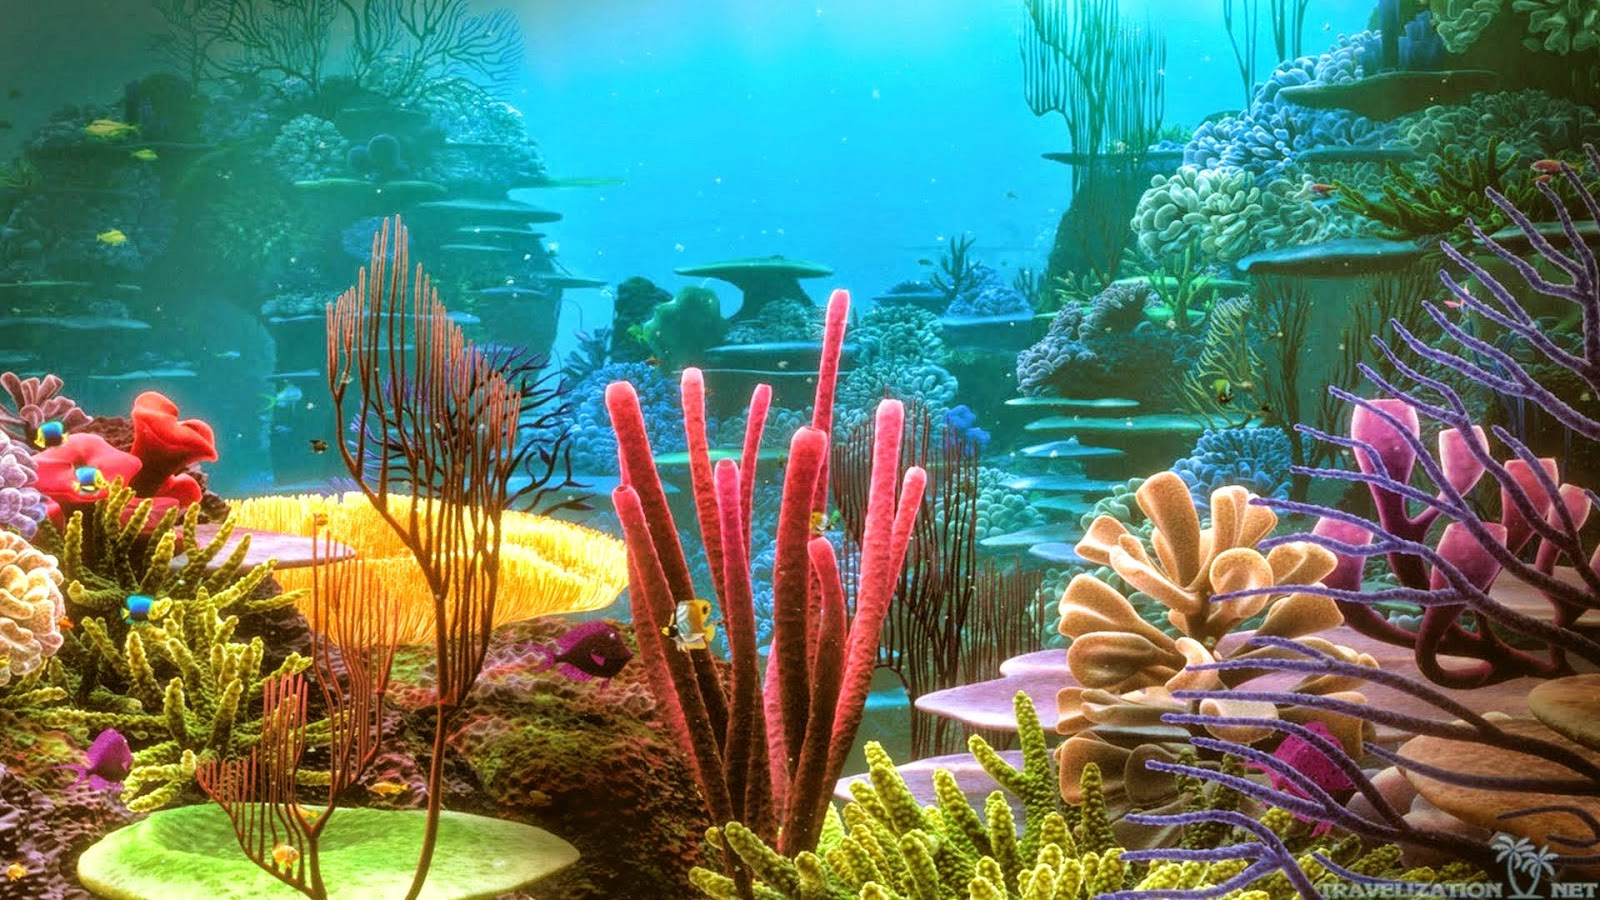 Coral Reef Fish - HD Wallpapers | Earth Blog